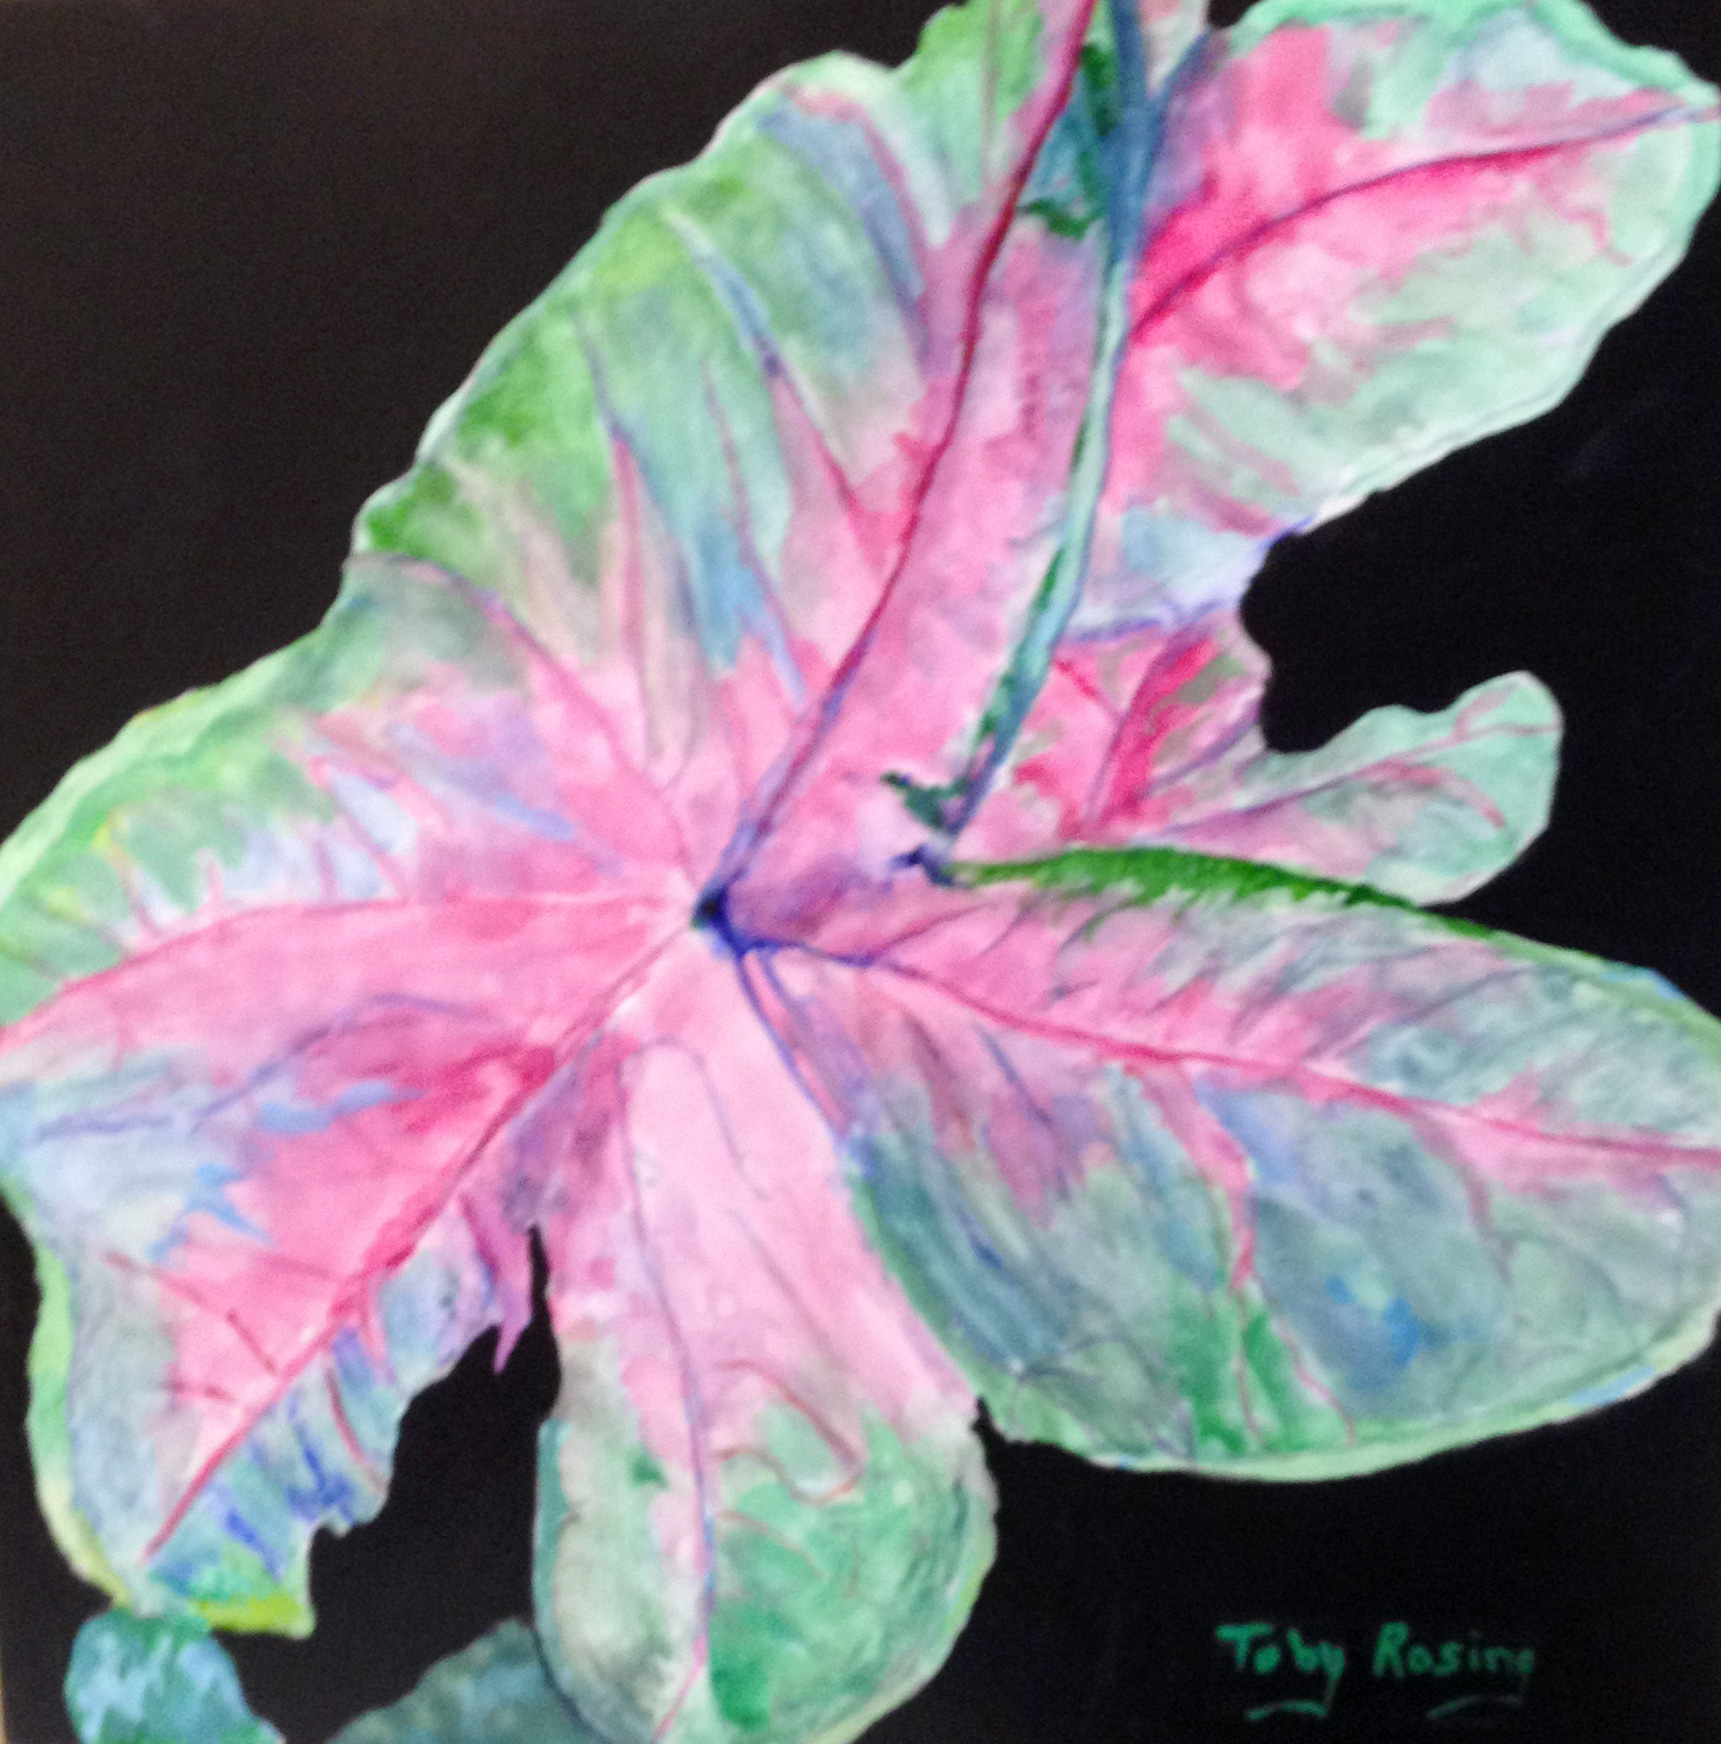 Caladium Leaves - Watercolor